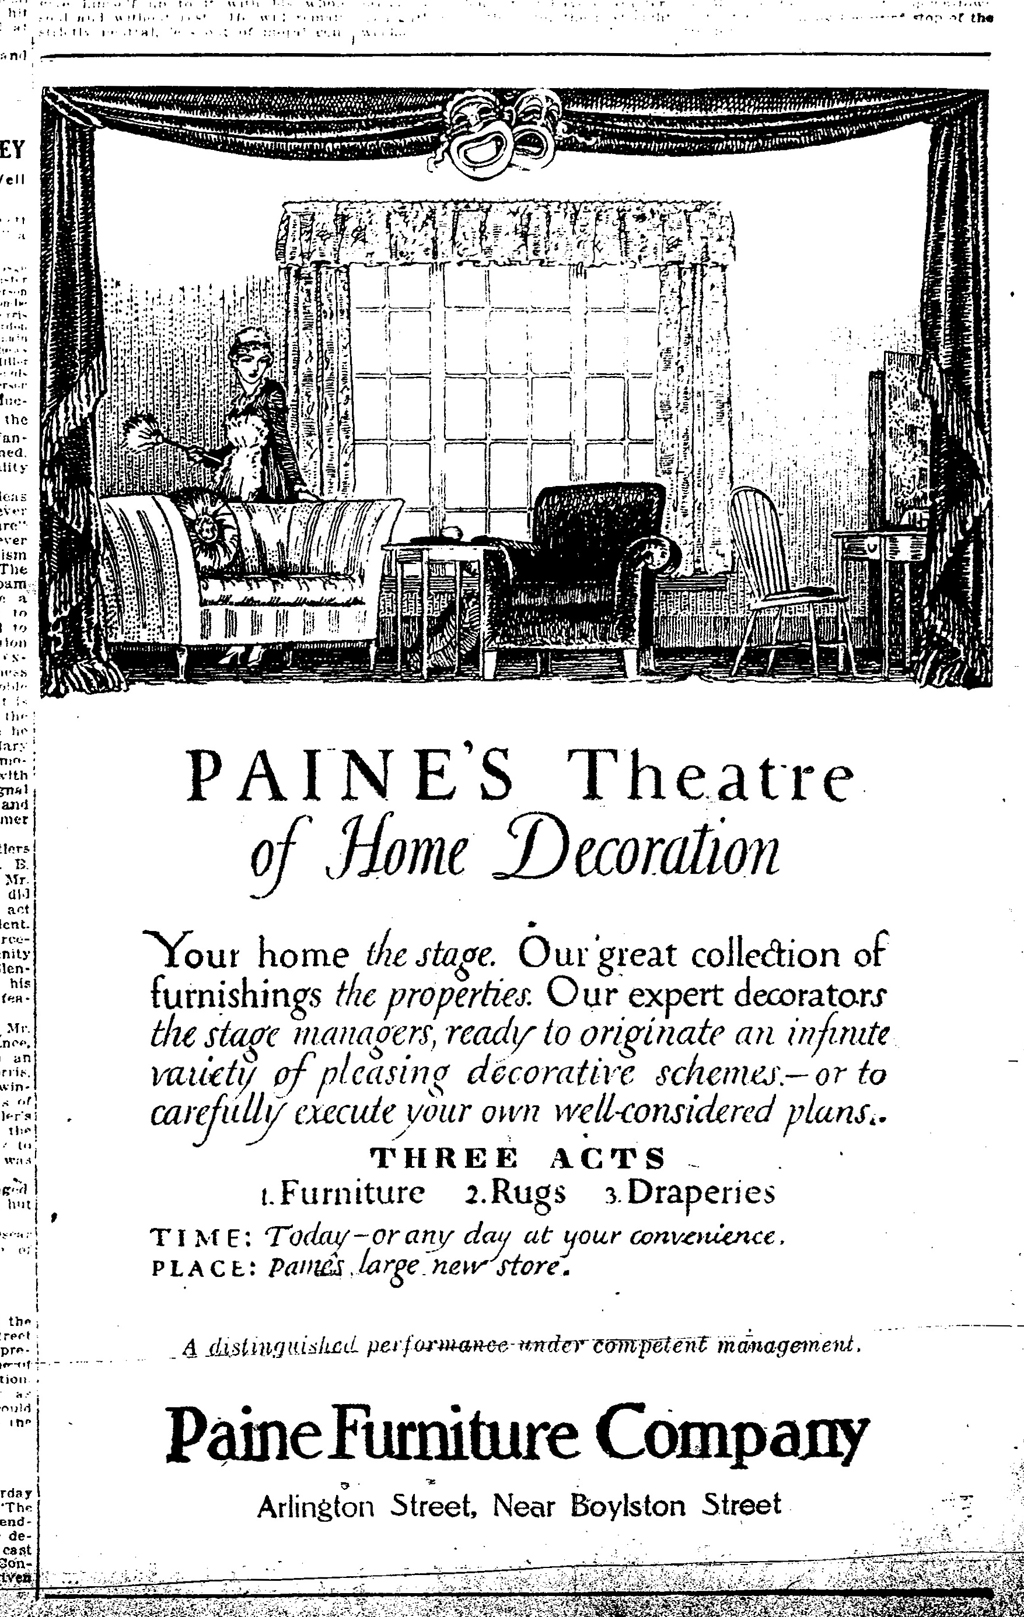 """Paine's Theatre of Home Decoration"" advertisement (October 10, 1916). Illustration and lettering by W.A. Dwiggins."